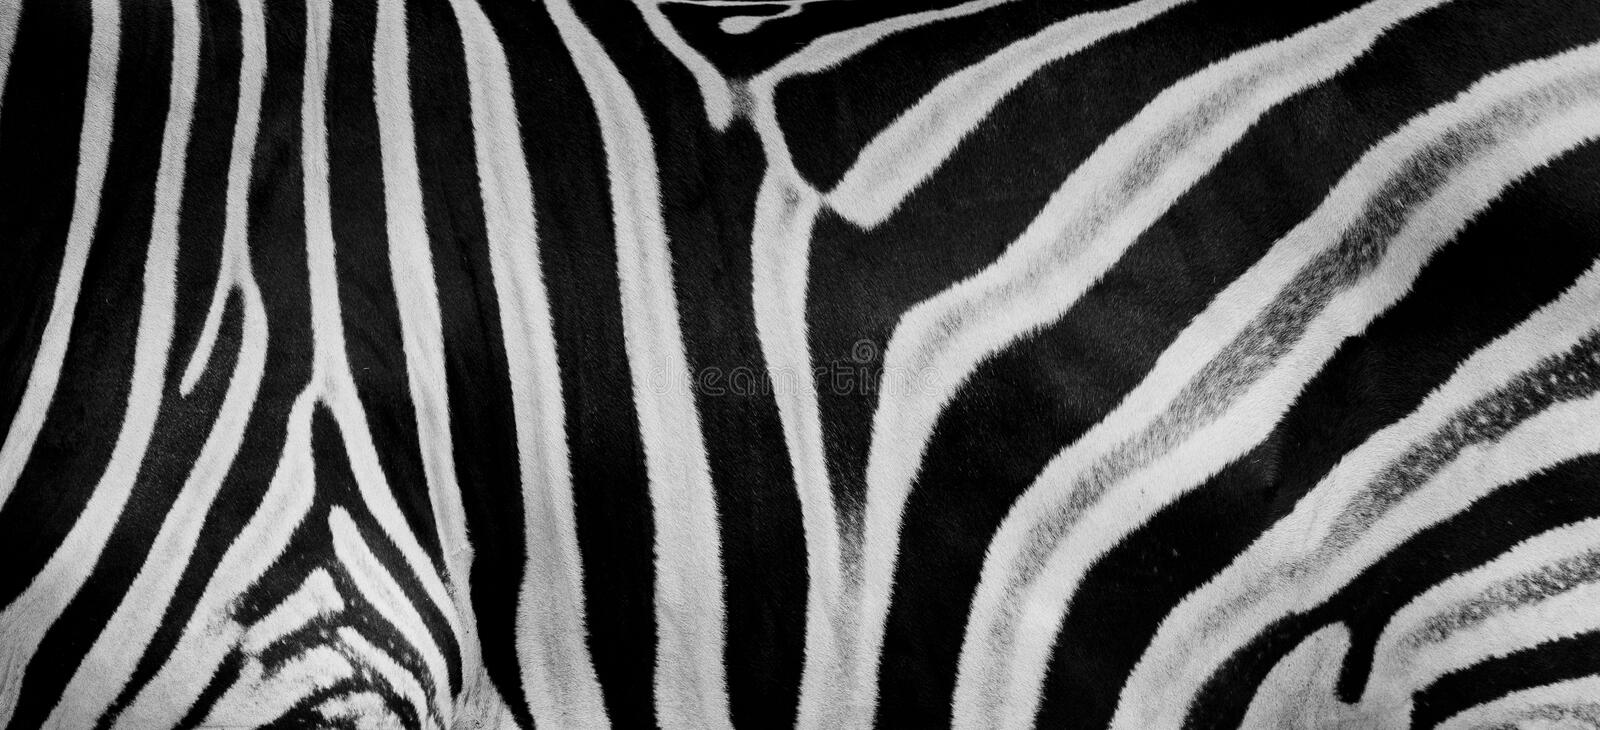 Texture of fur, wool zebra. Striped black and white background. Wild animals stock photos